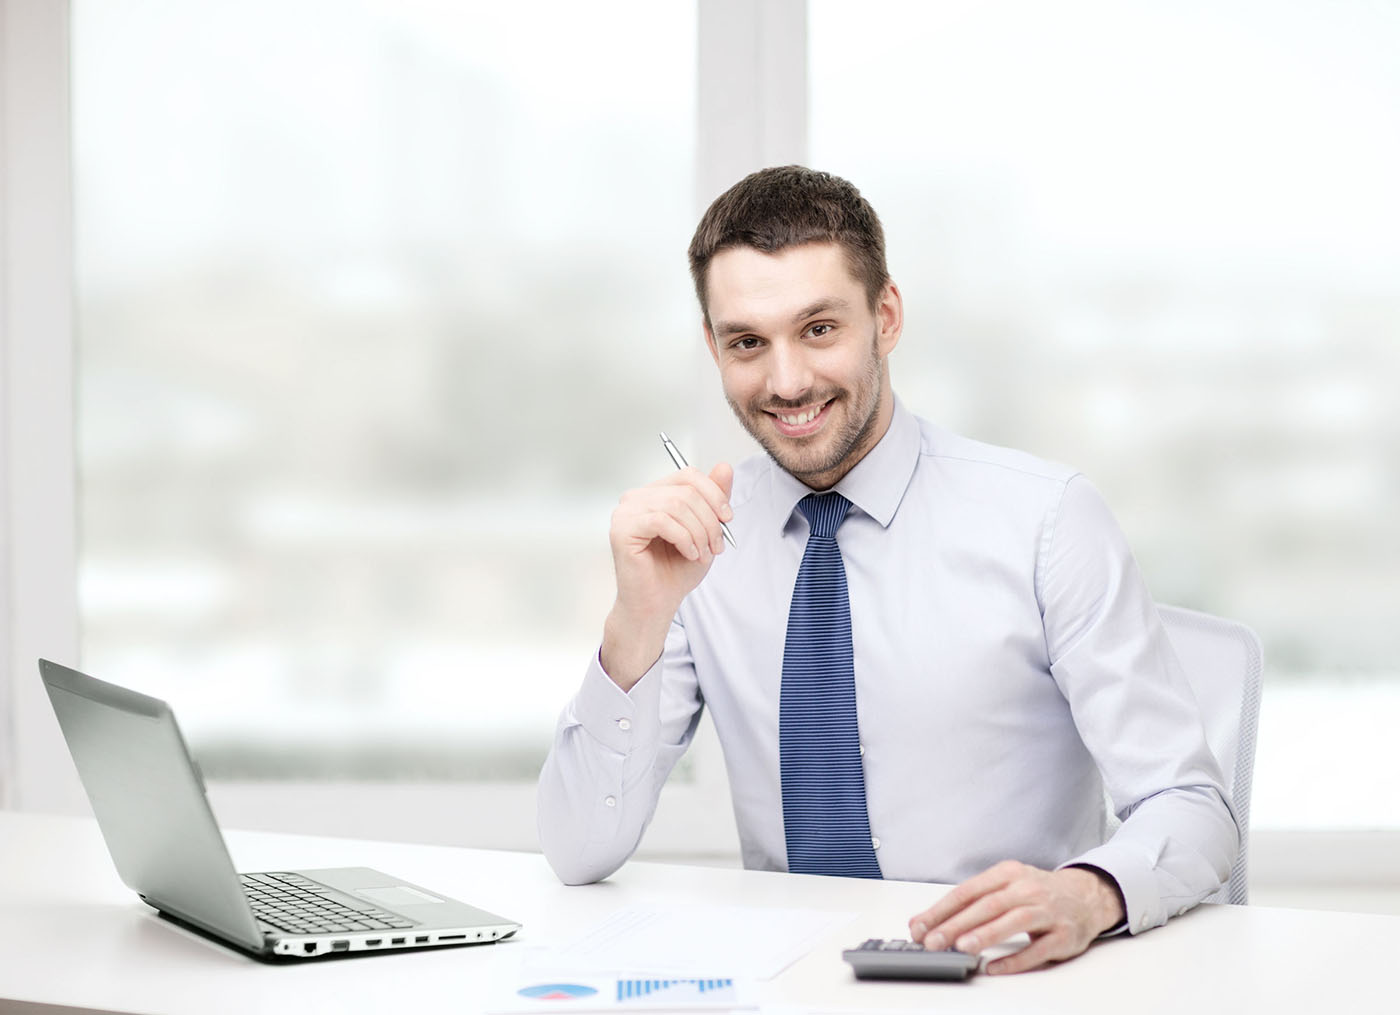 Man at computer with calculator